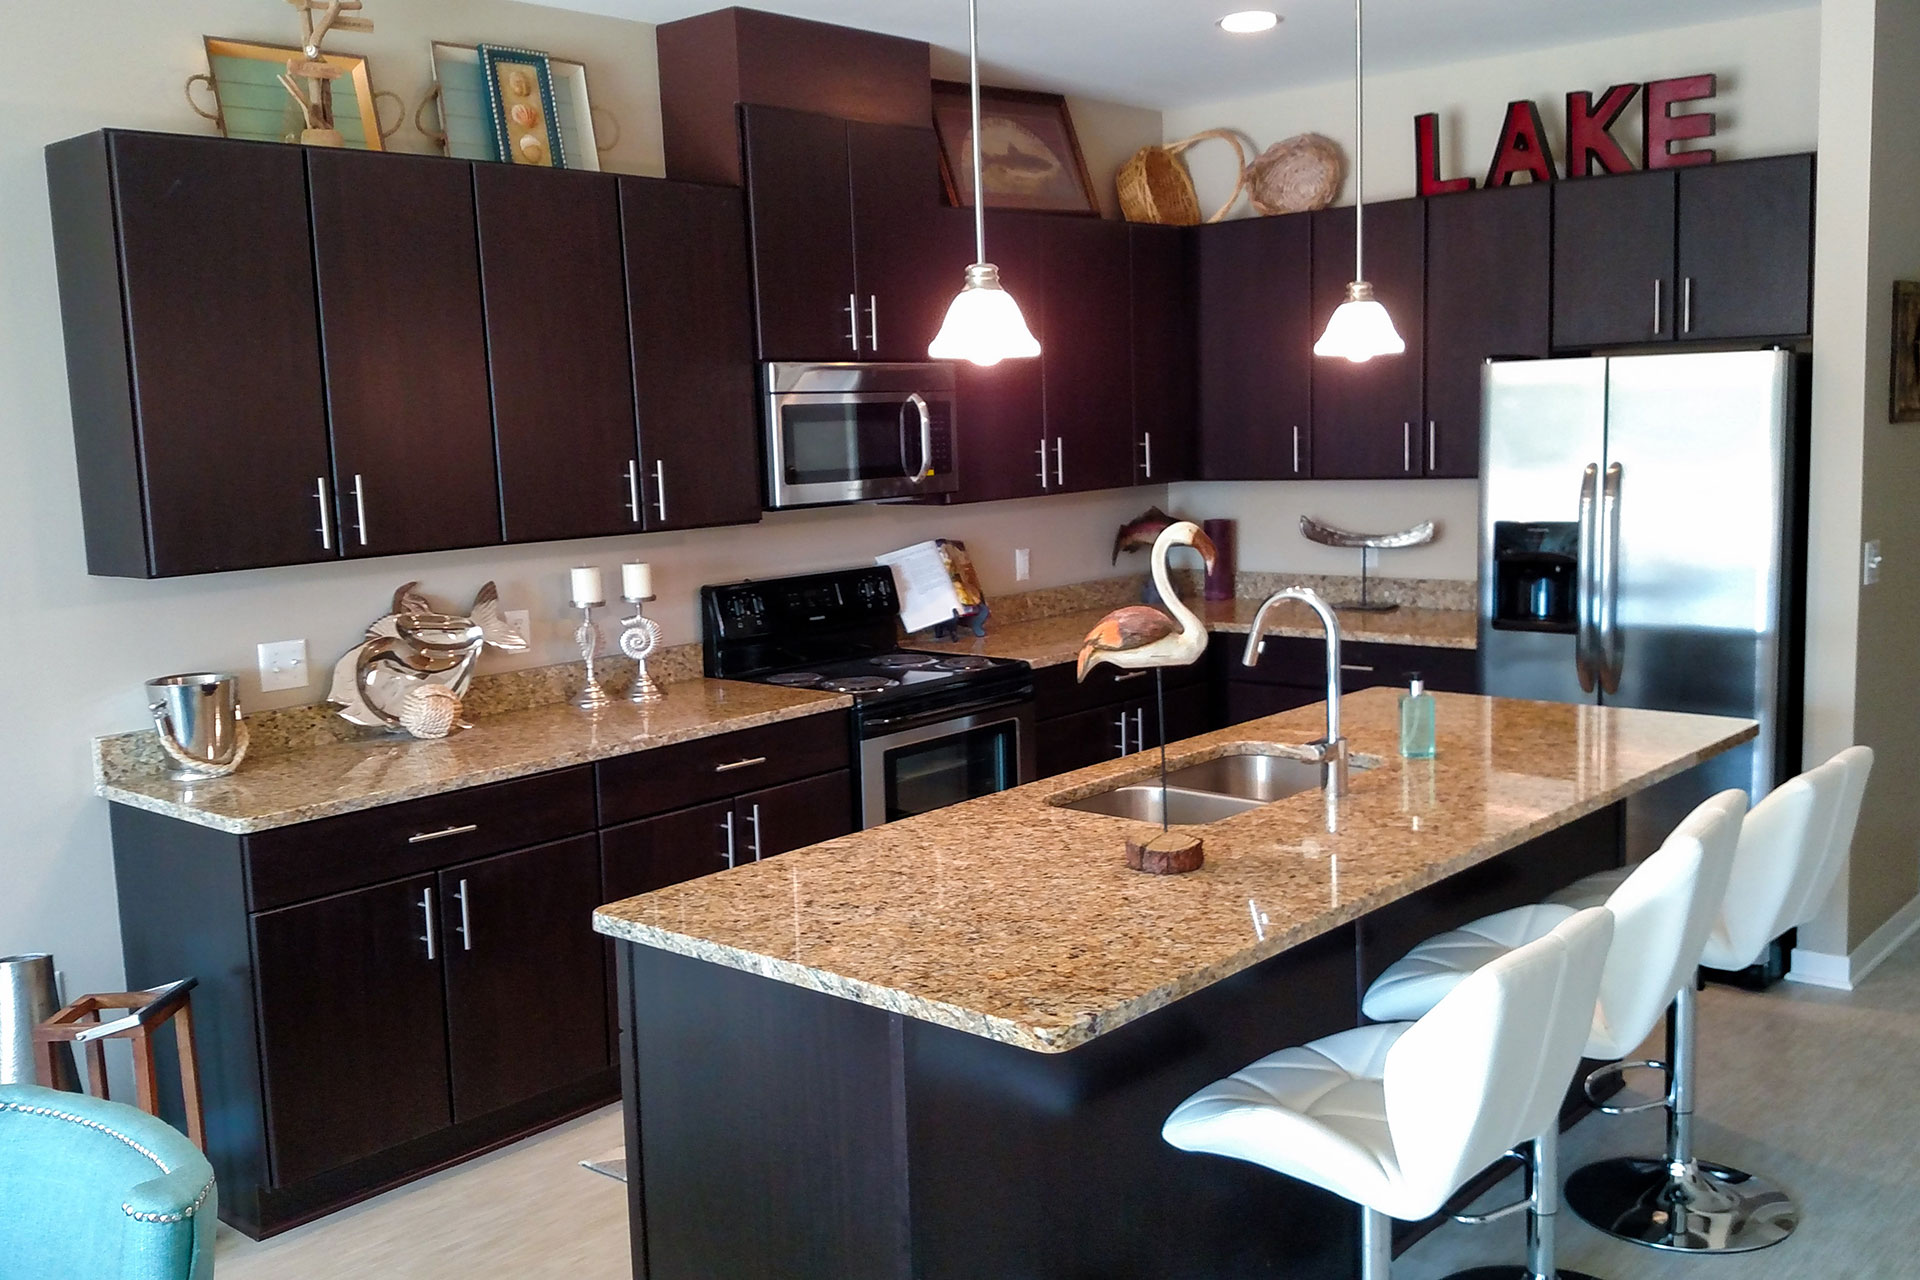 Pre-fabricated cabinets and granite countertops. Fabrication and installation of wood base, casings and doors.